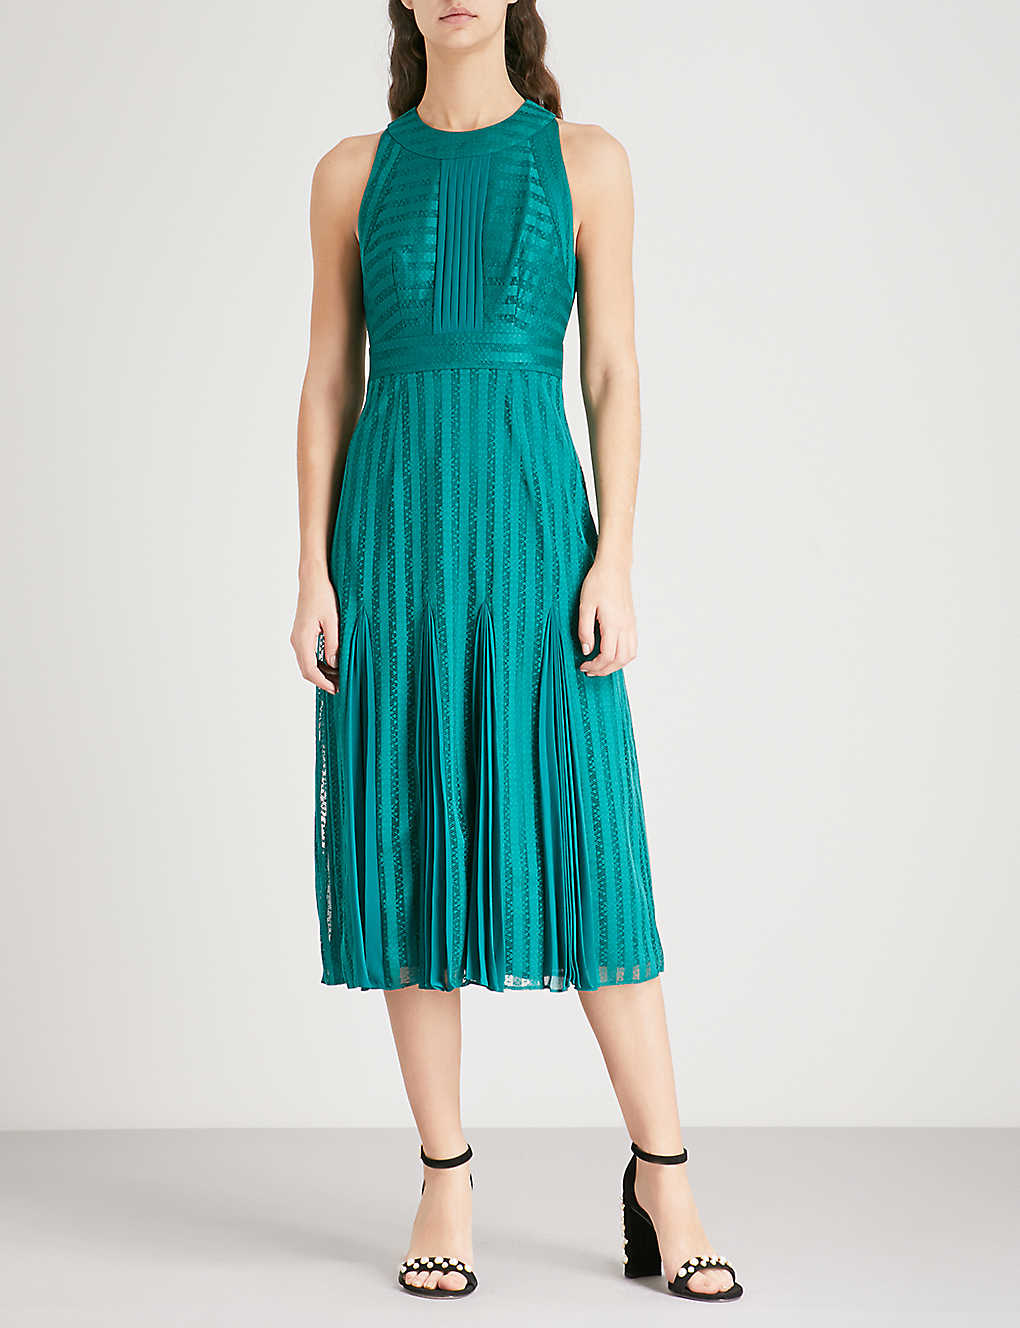 WHISTLES - Nora striped lace dress | Selfridges.com